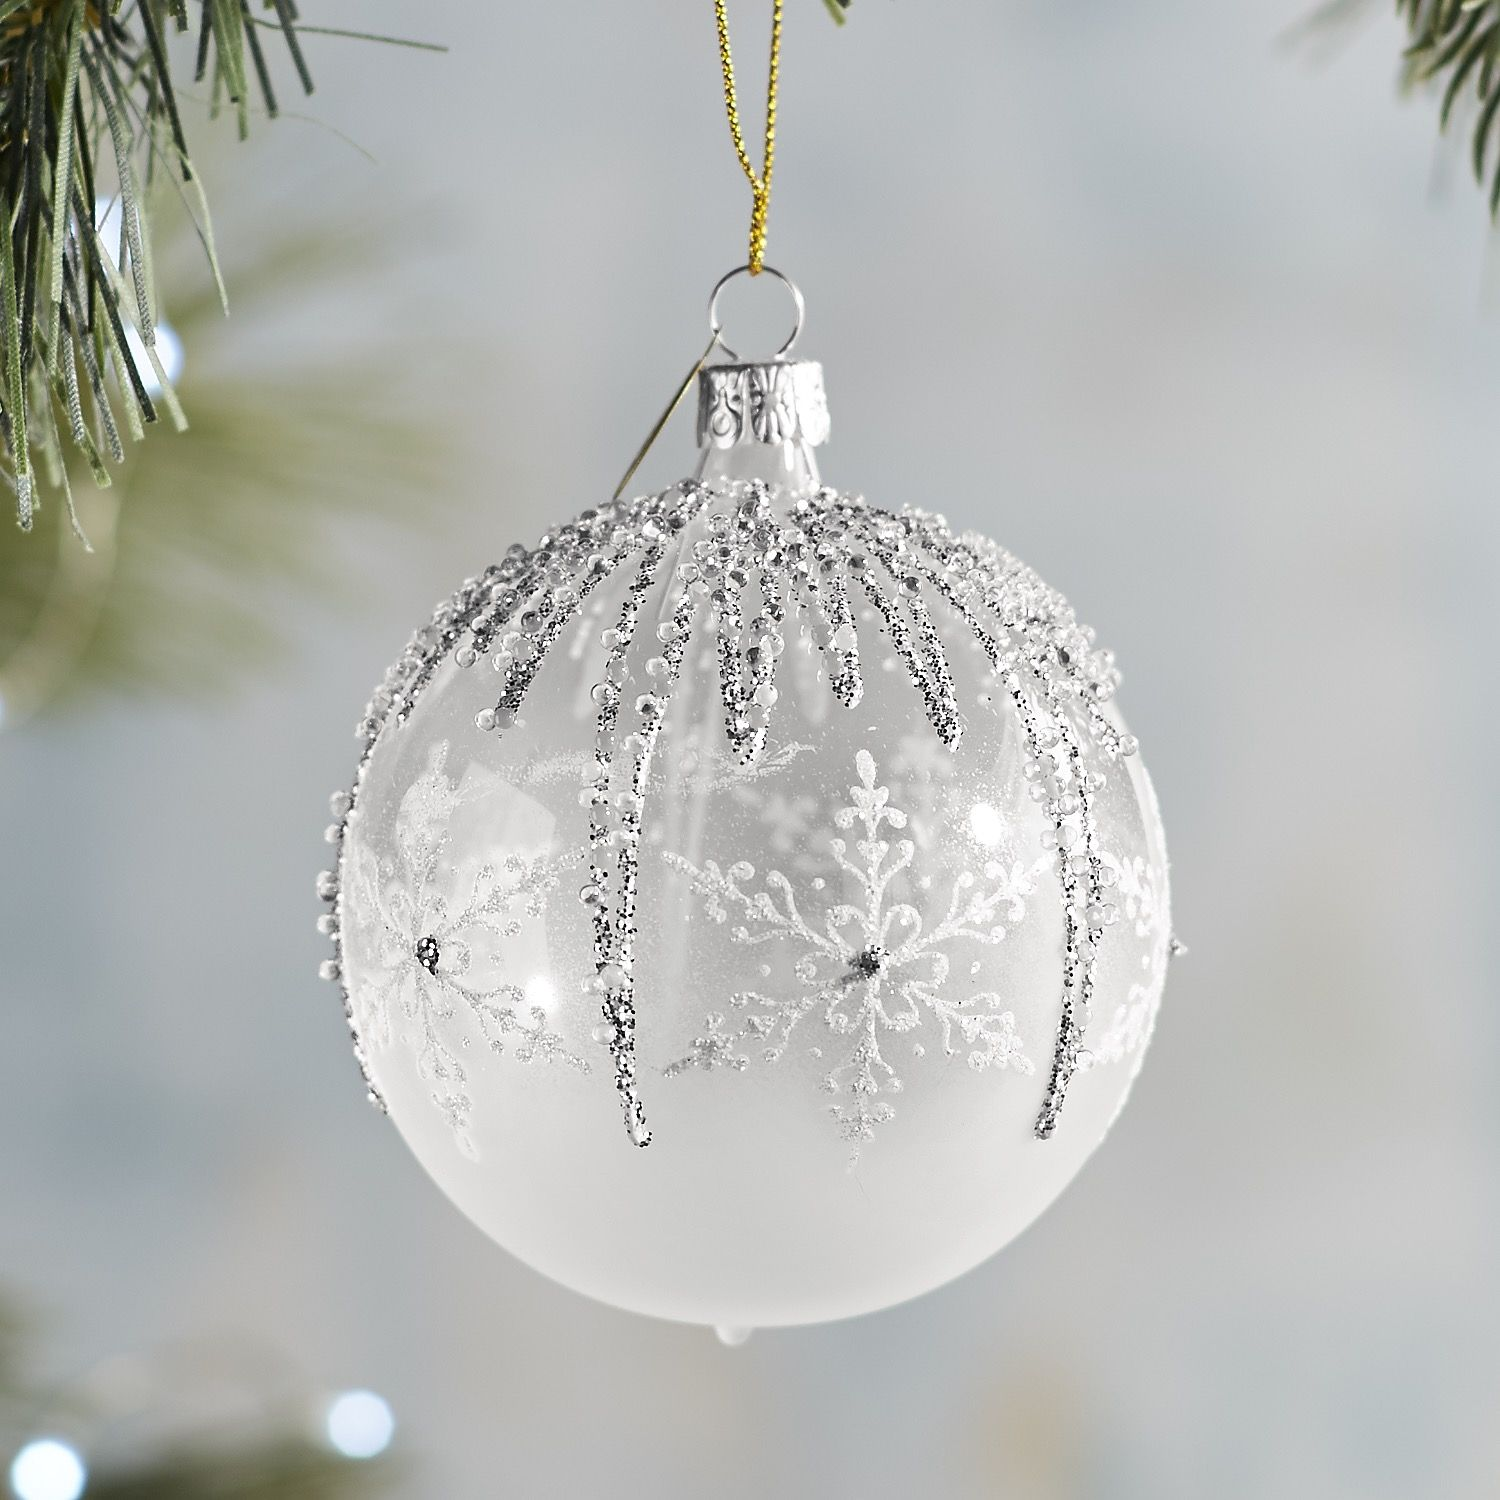 European Glass Snowflake Frost Ornament Clear Painted Christmas Ornaments Handmade Christmas Ornaments Christmas Ornaments Homemade